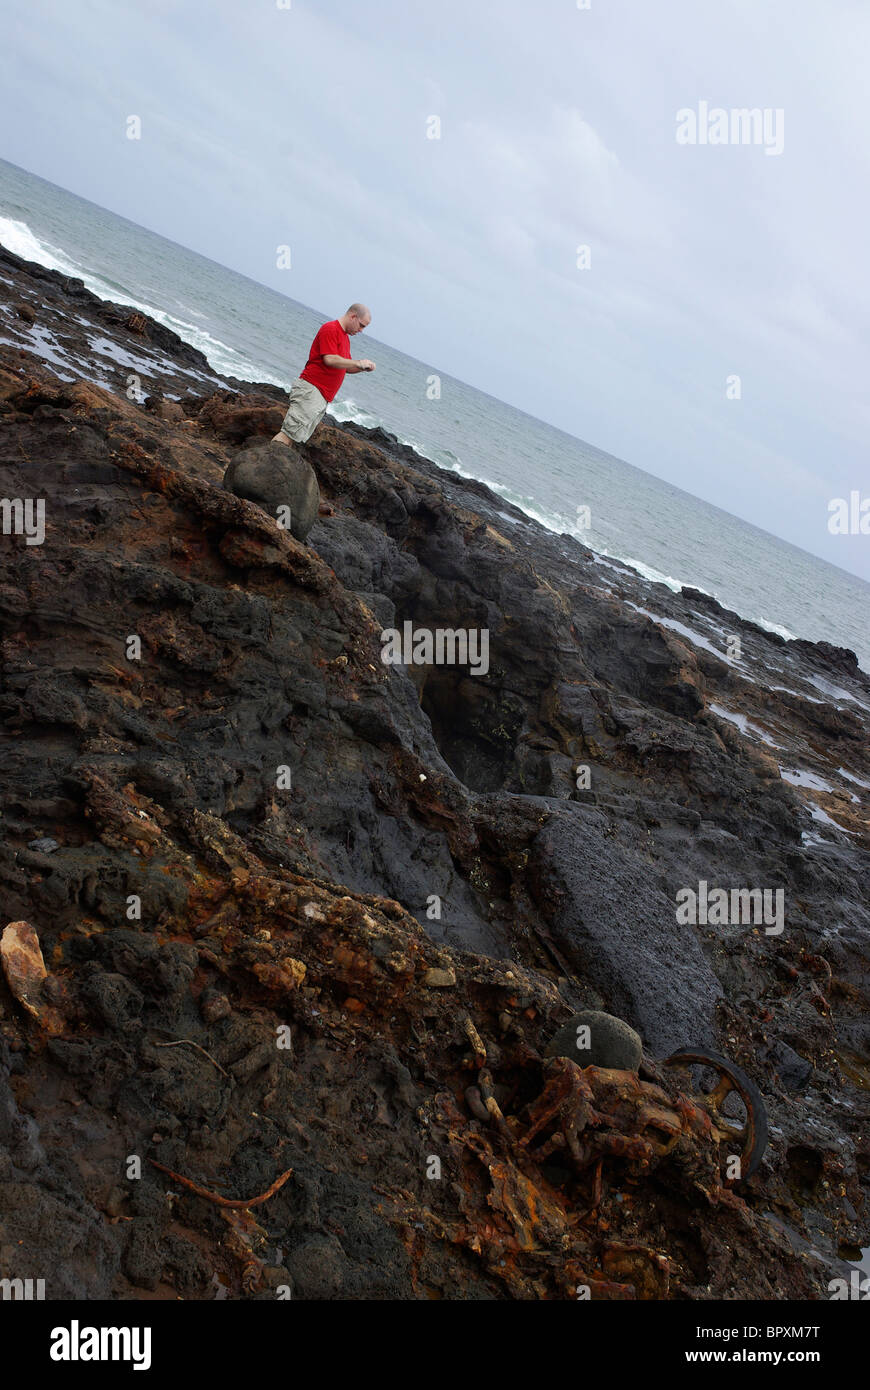 A man stands on the shores of Glass Beach, Hawaii, observing the decomposing trash littering the shores. - Stock Image